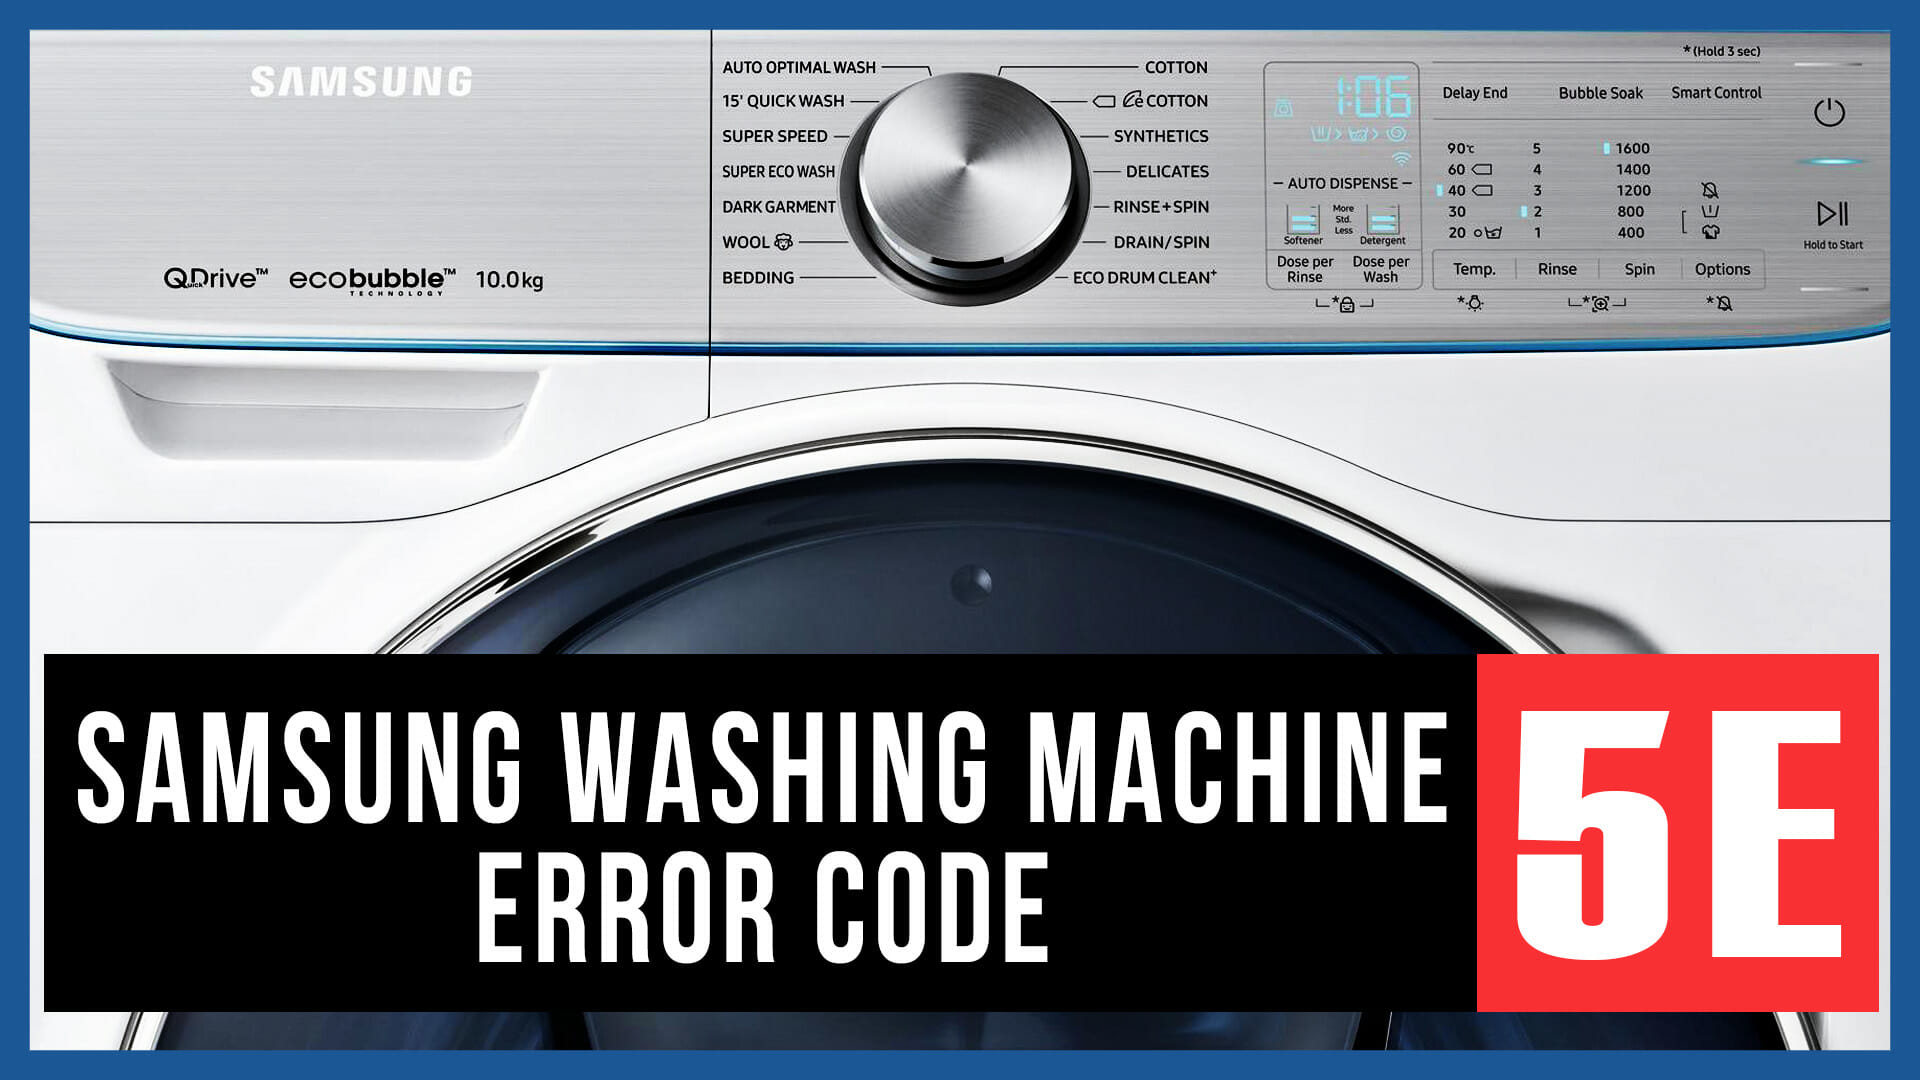 Samsung washing machine error code 5E